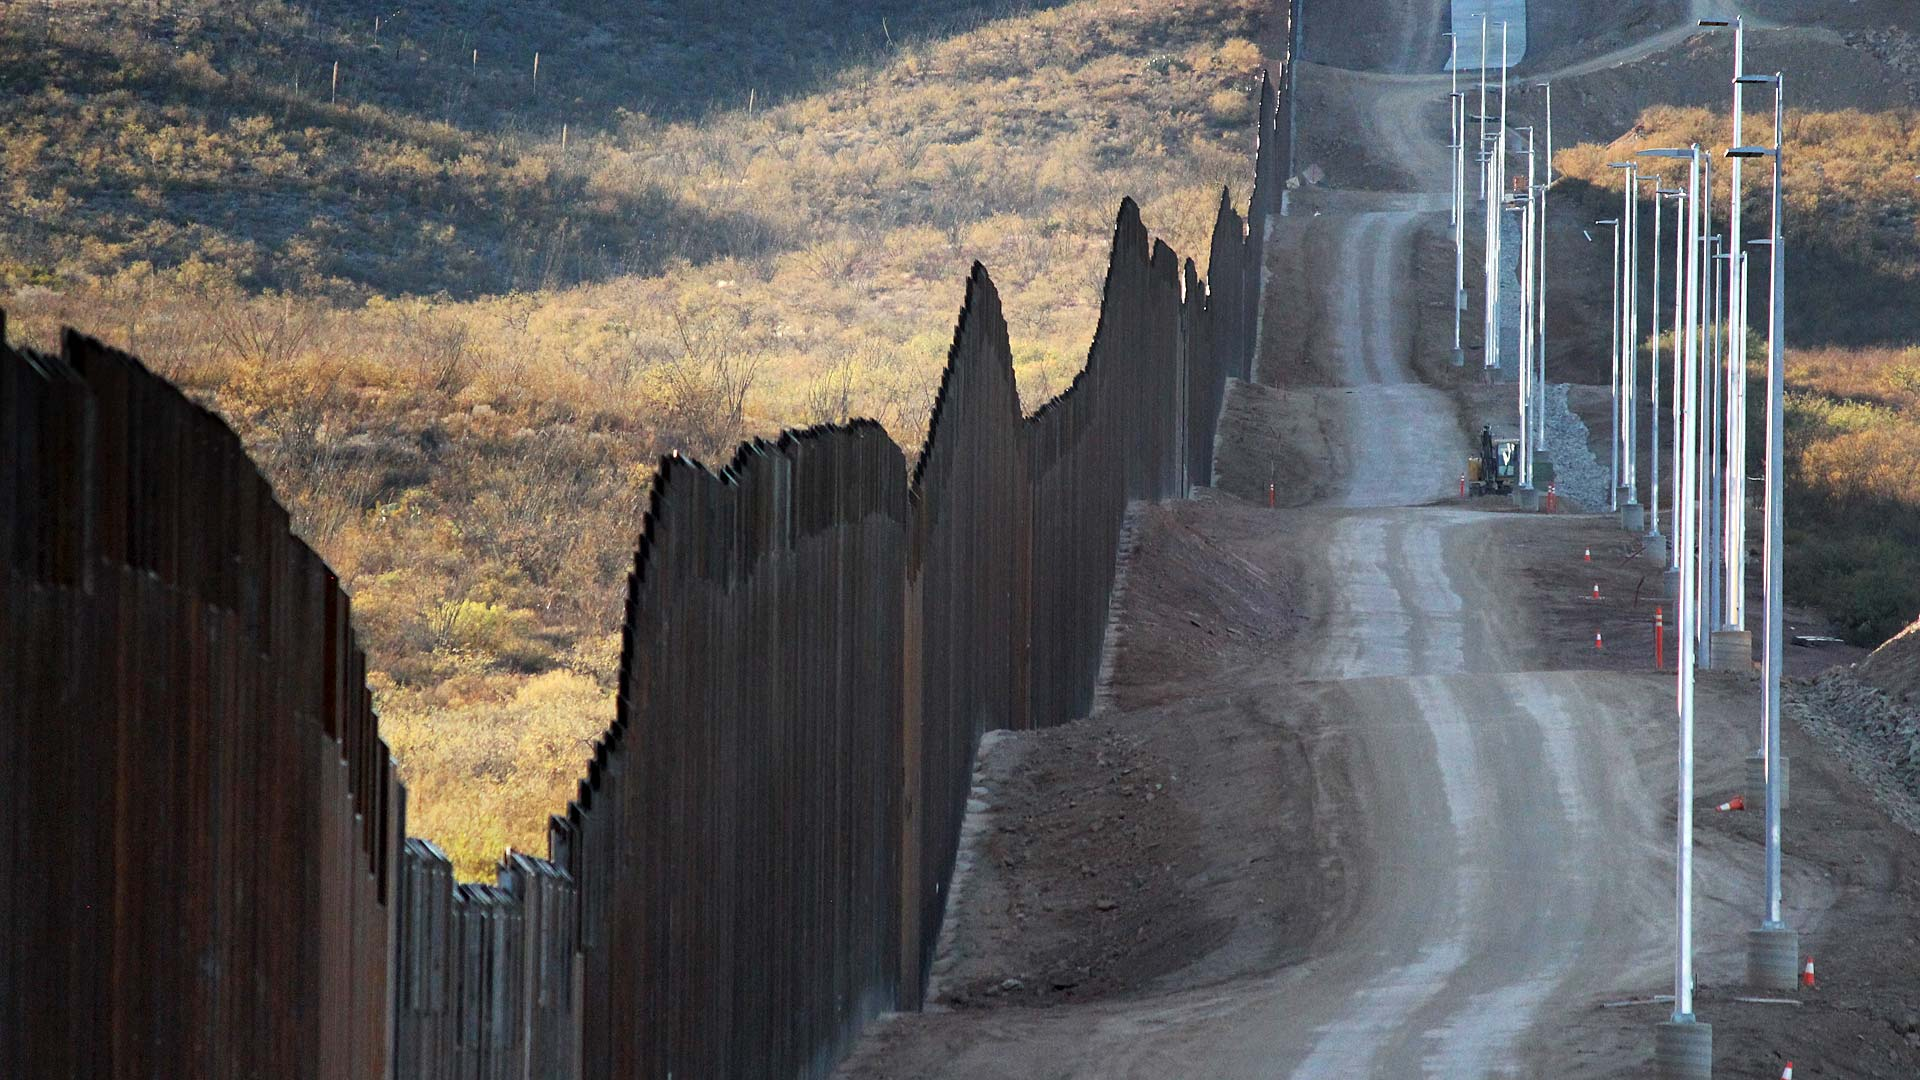 A stretch of border fencing east of Douglas constructed as part of President Trump's initiative to erect a taller wall along the southern border. November 2020.